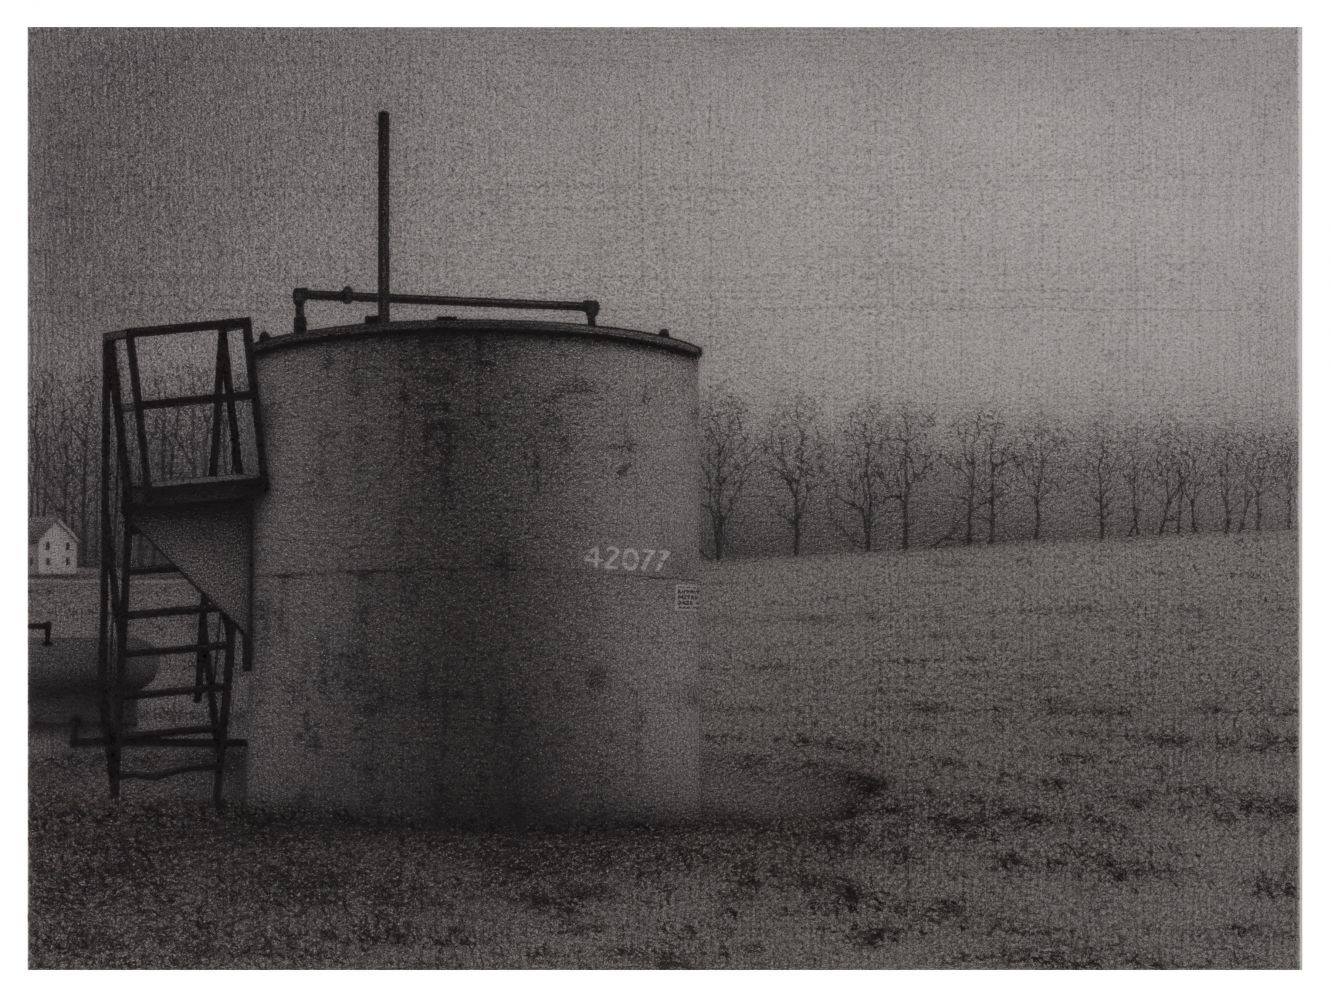 Anthony Mitri, Ohio Oil, September, 2020, charcoal on paper, 7 7/8 x 10 5/8 inches